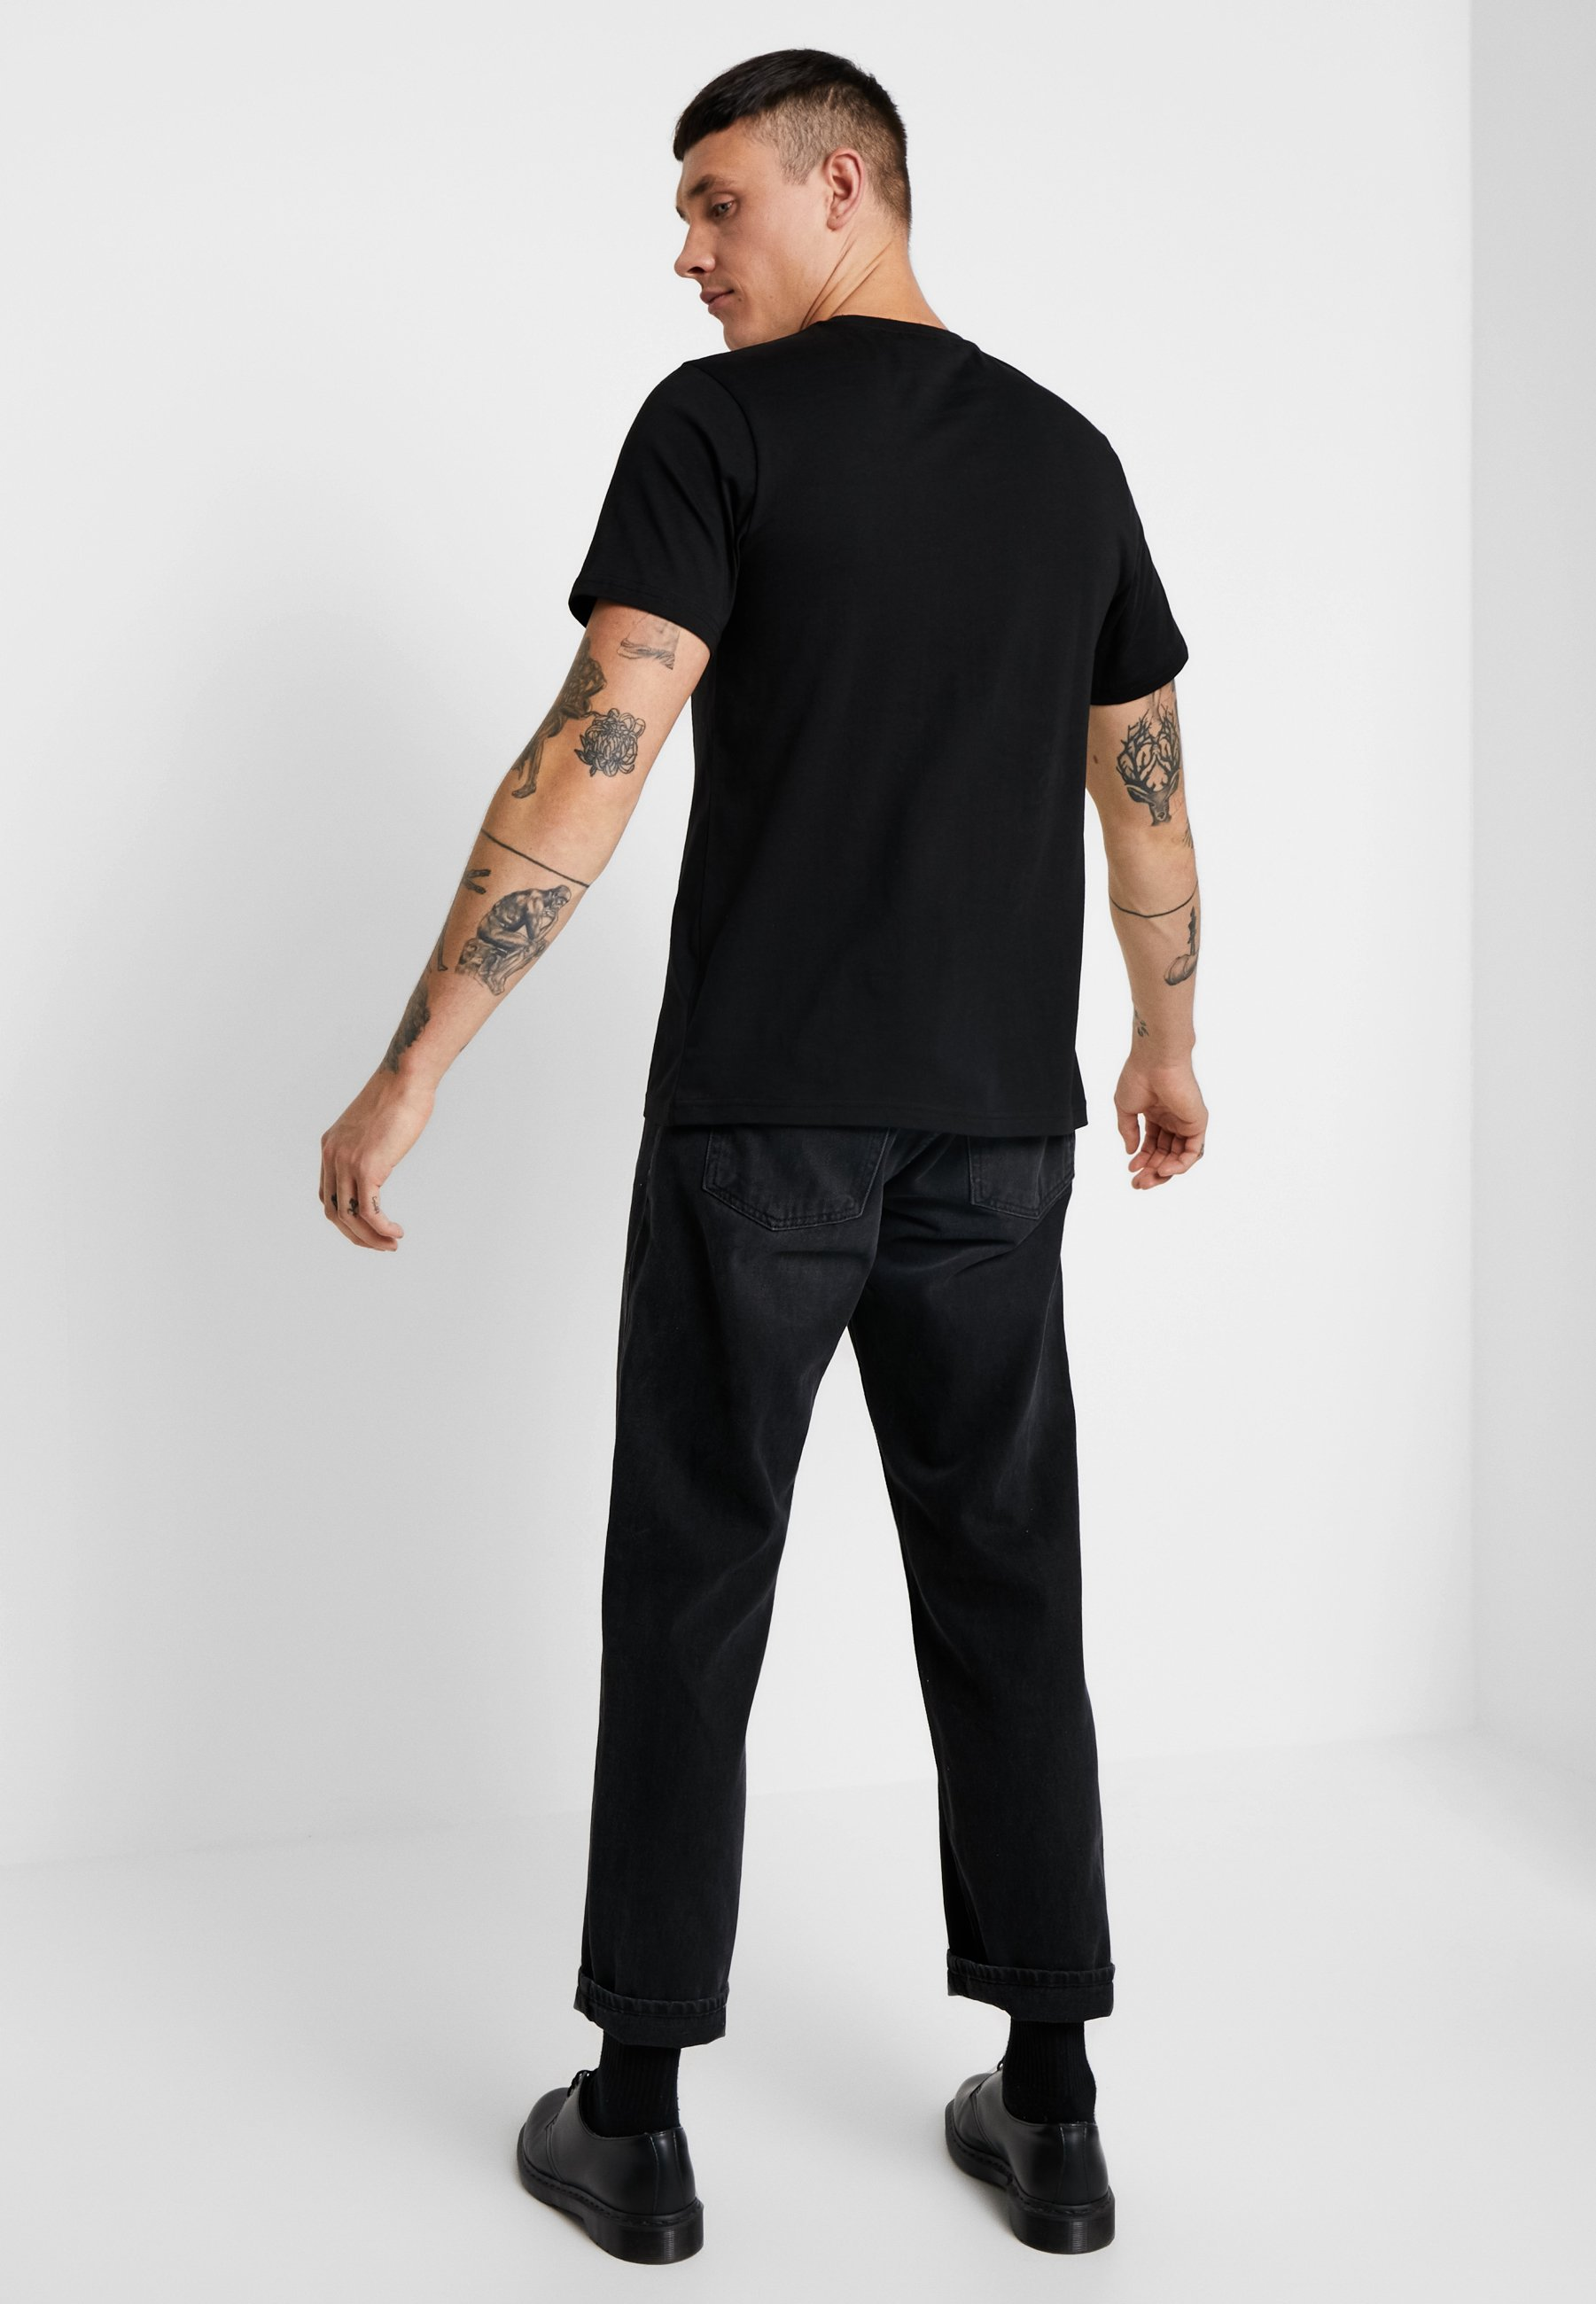 Black DoggT Topman shirt Imprimé Doggy CxoeBd